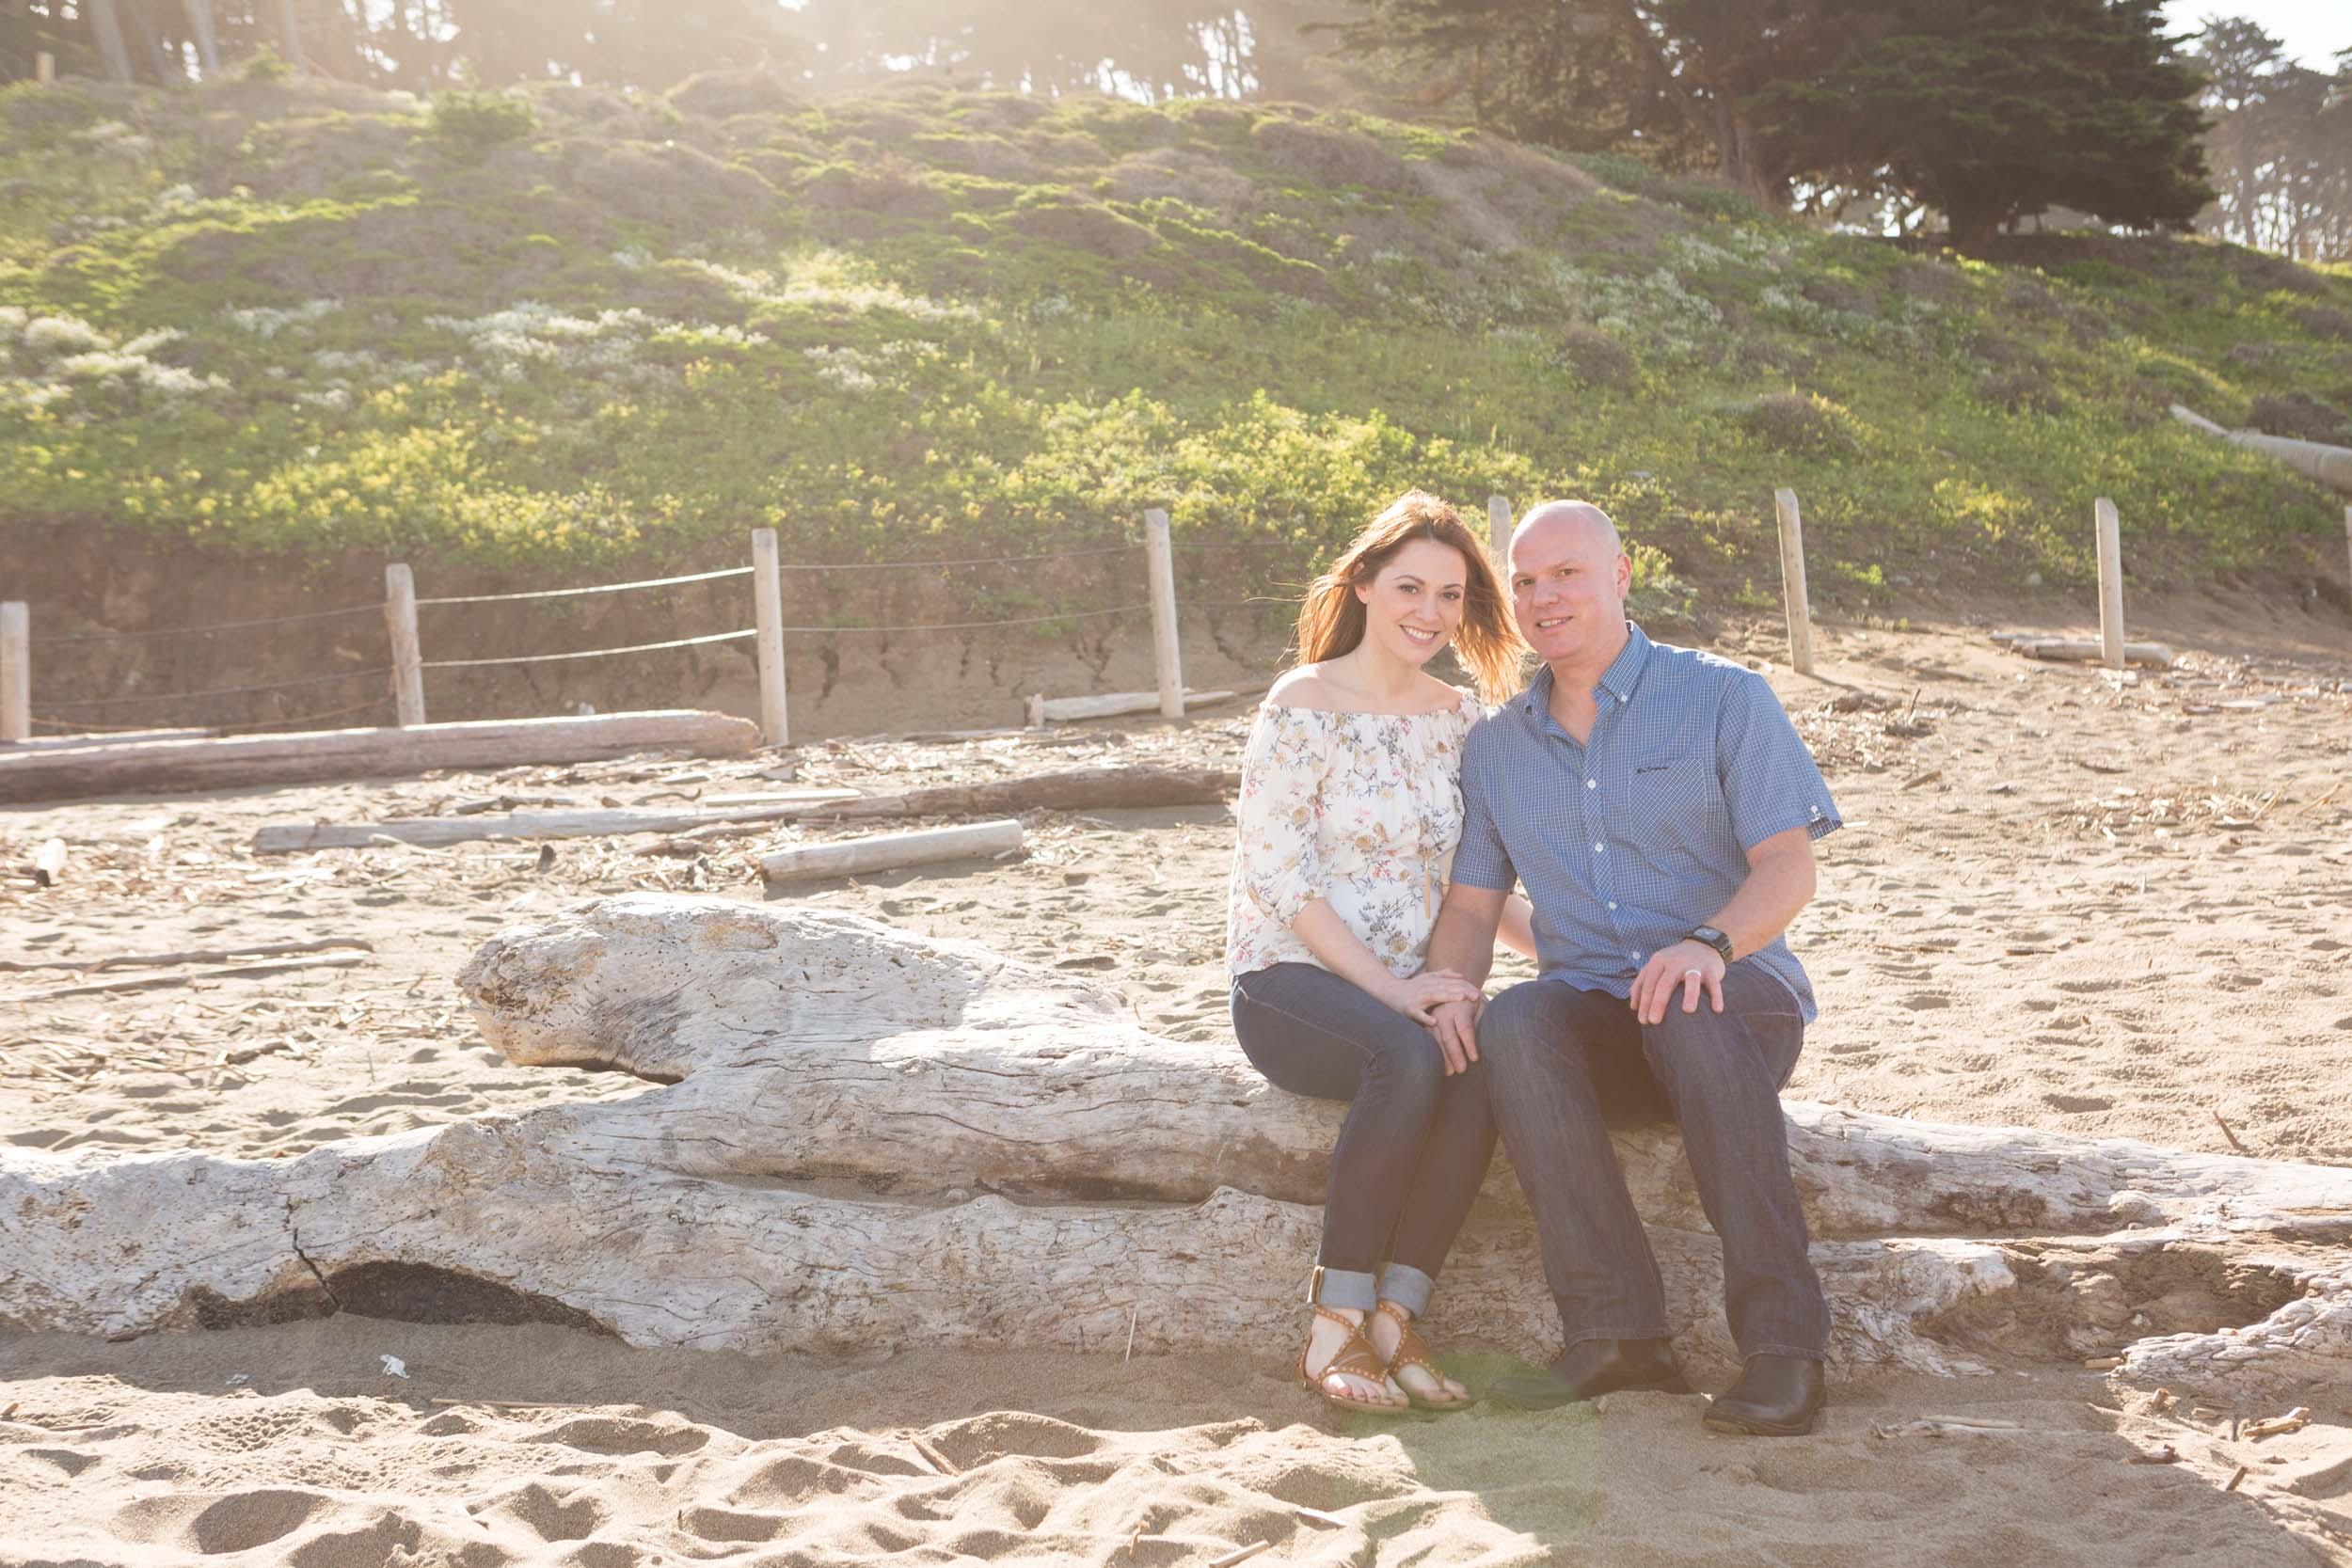 A couple sits on a log and smiles on a beach in San Francisco.